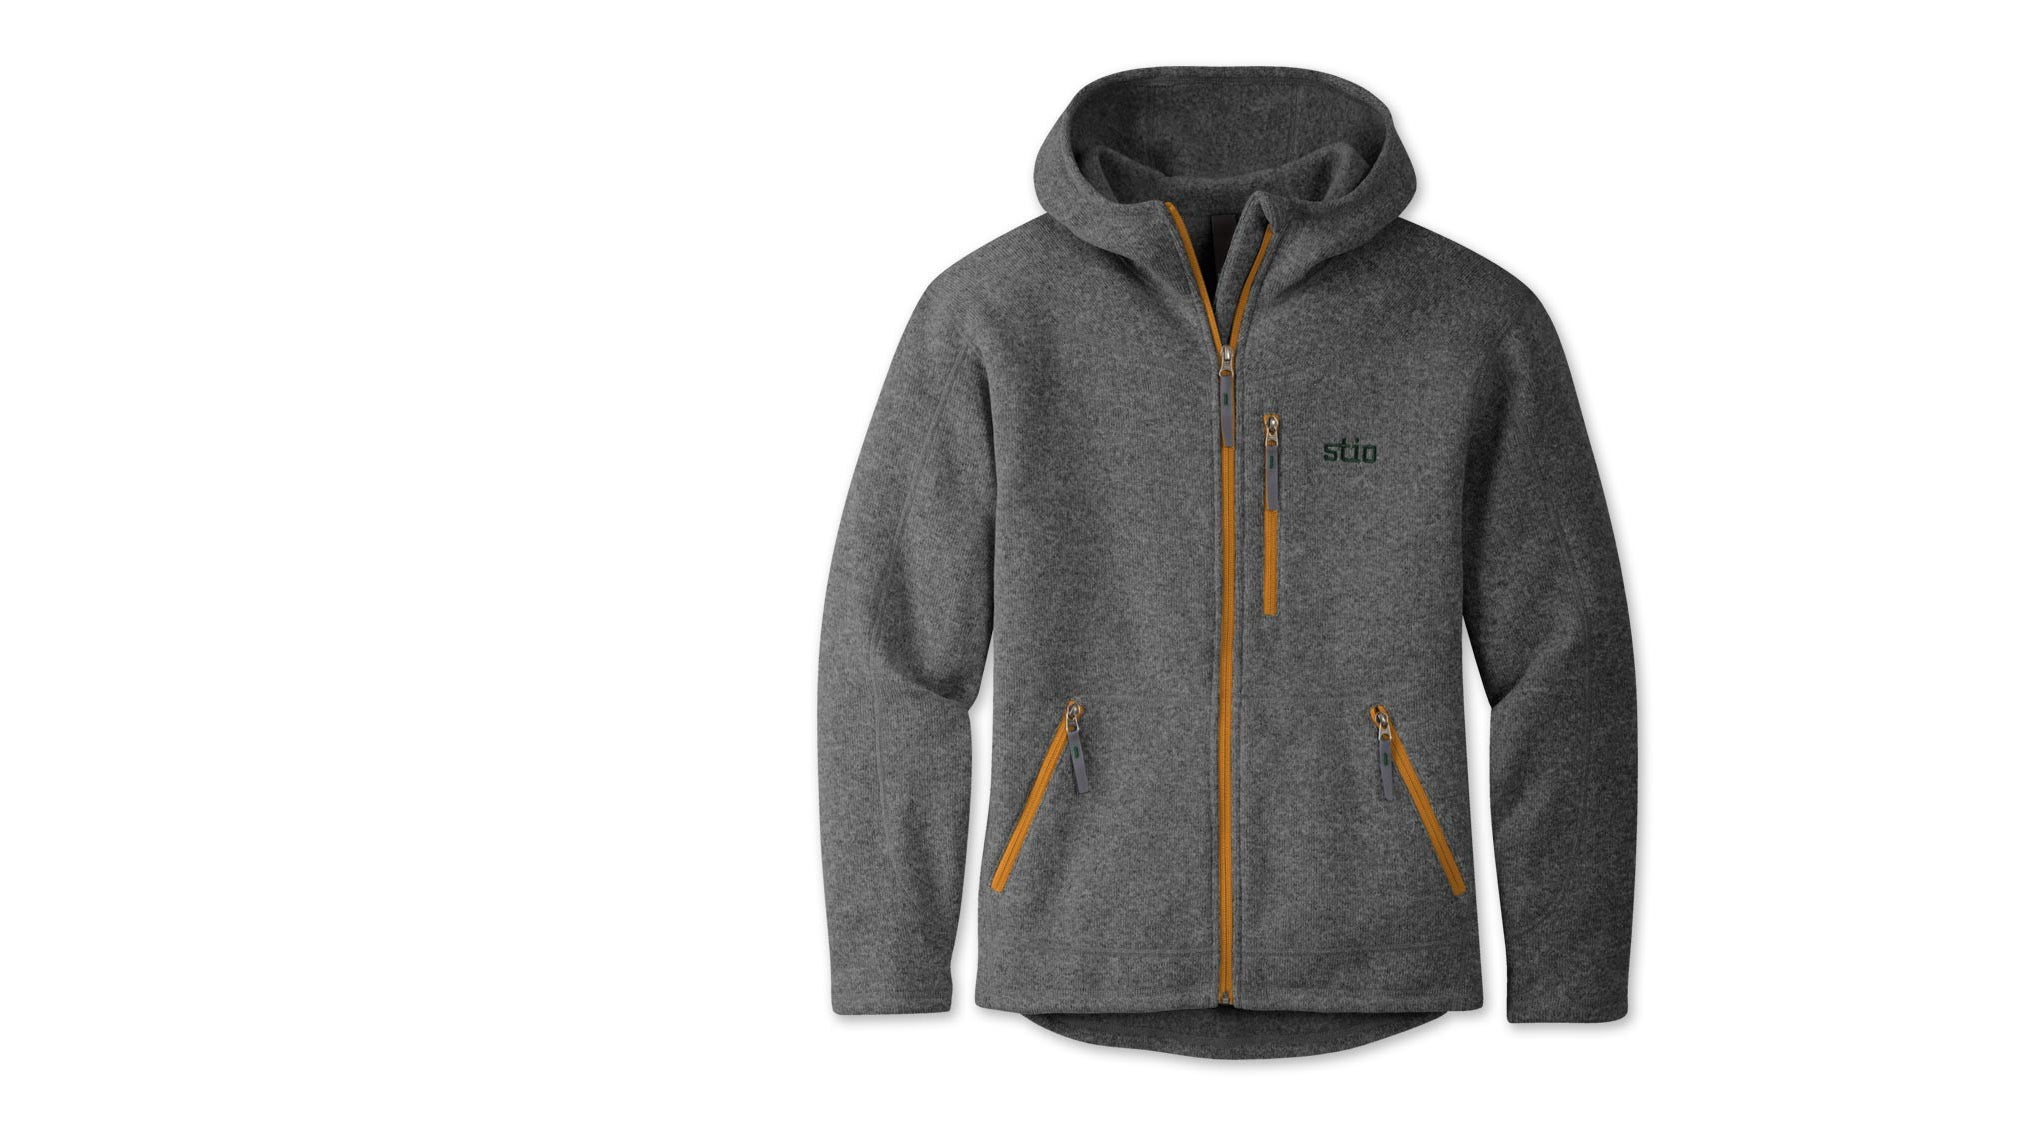 The Best Hoodie You'll Ever Wear